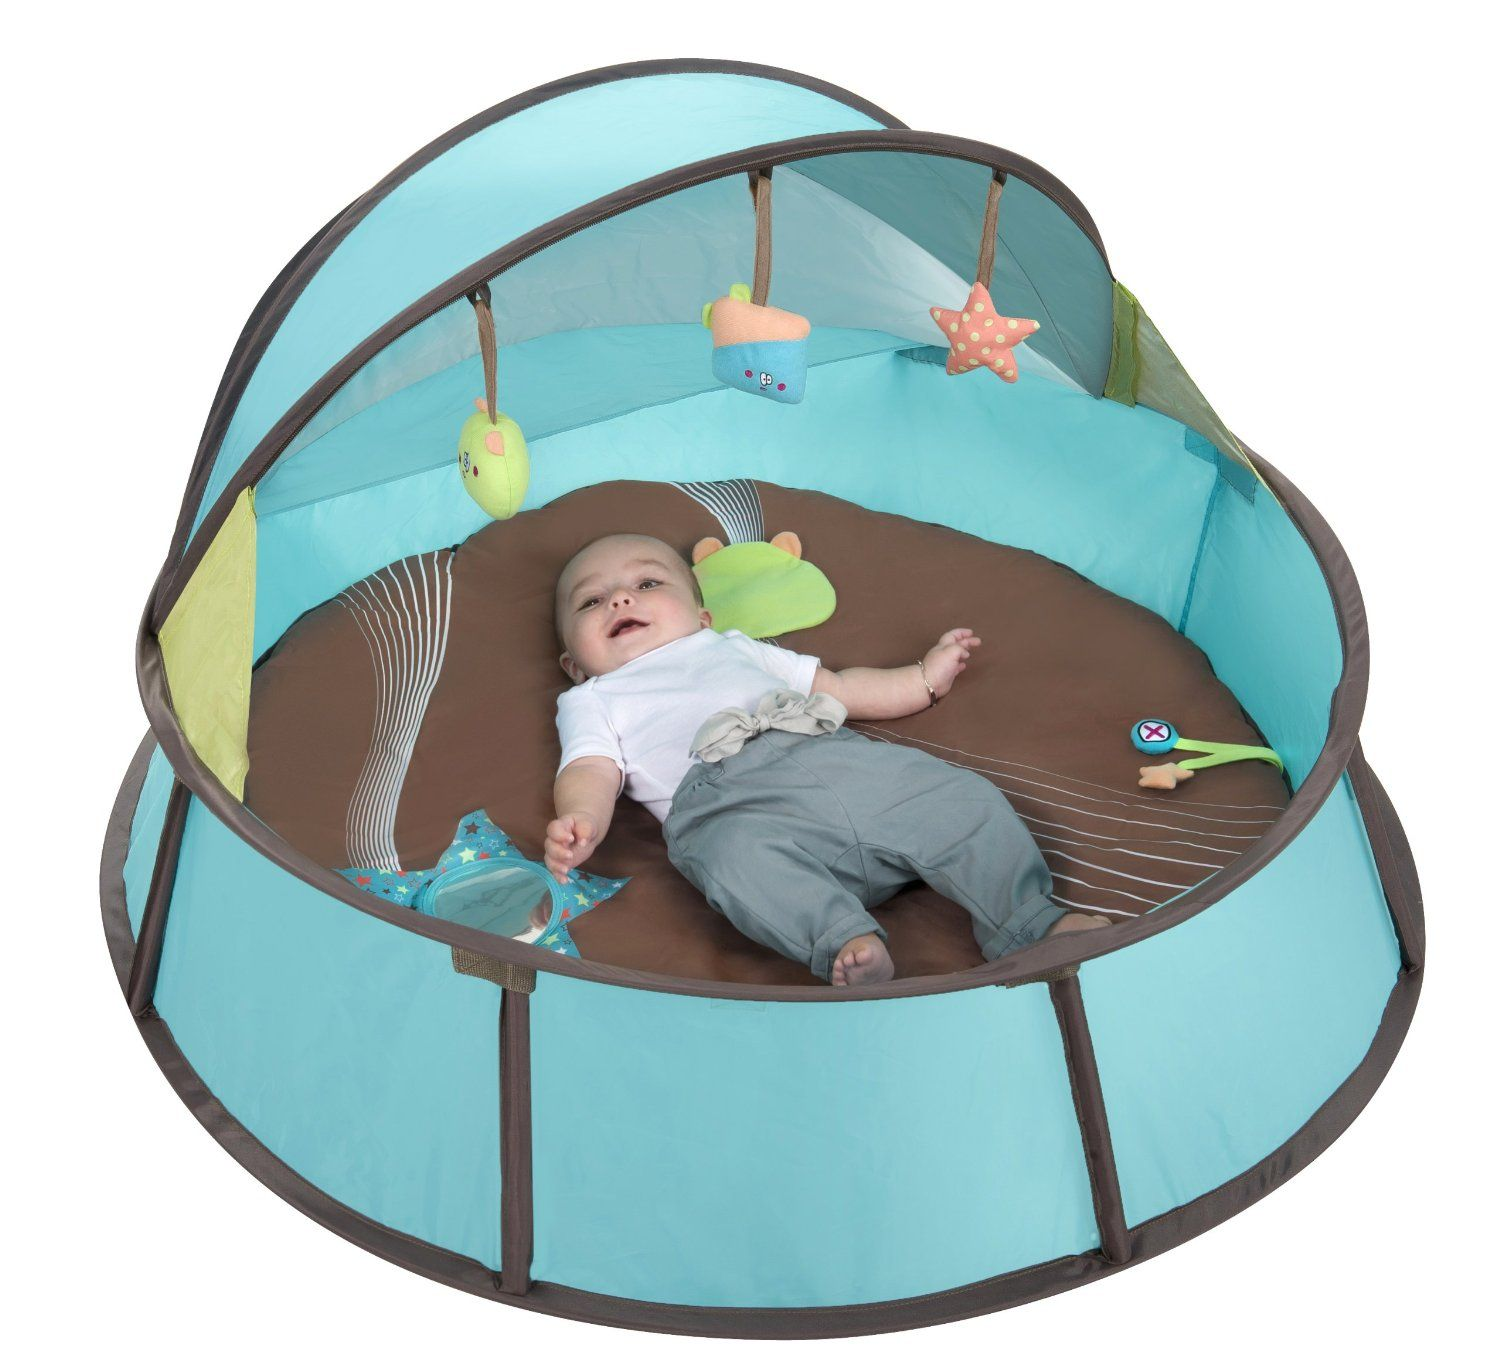 BabyMoov have summer safety u0026 fun covered with the Babyni UV tent.  sc 1 st  Pinterest : uv tent for baby - memphite.com